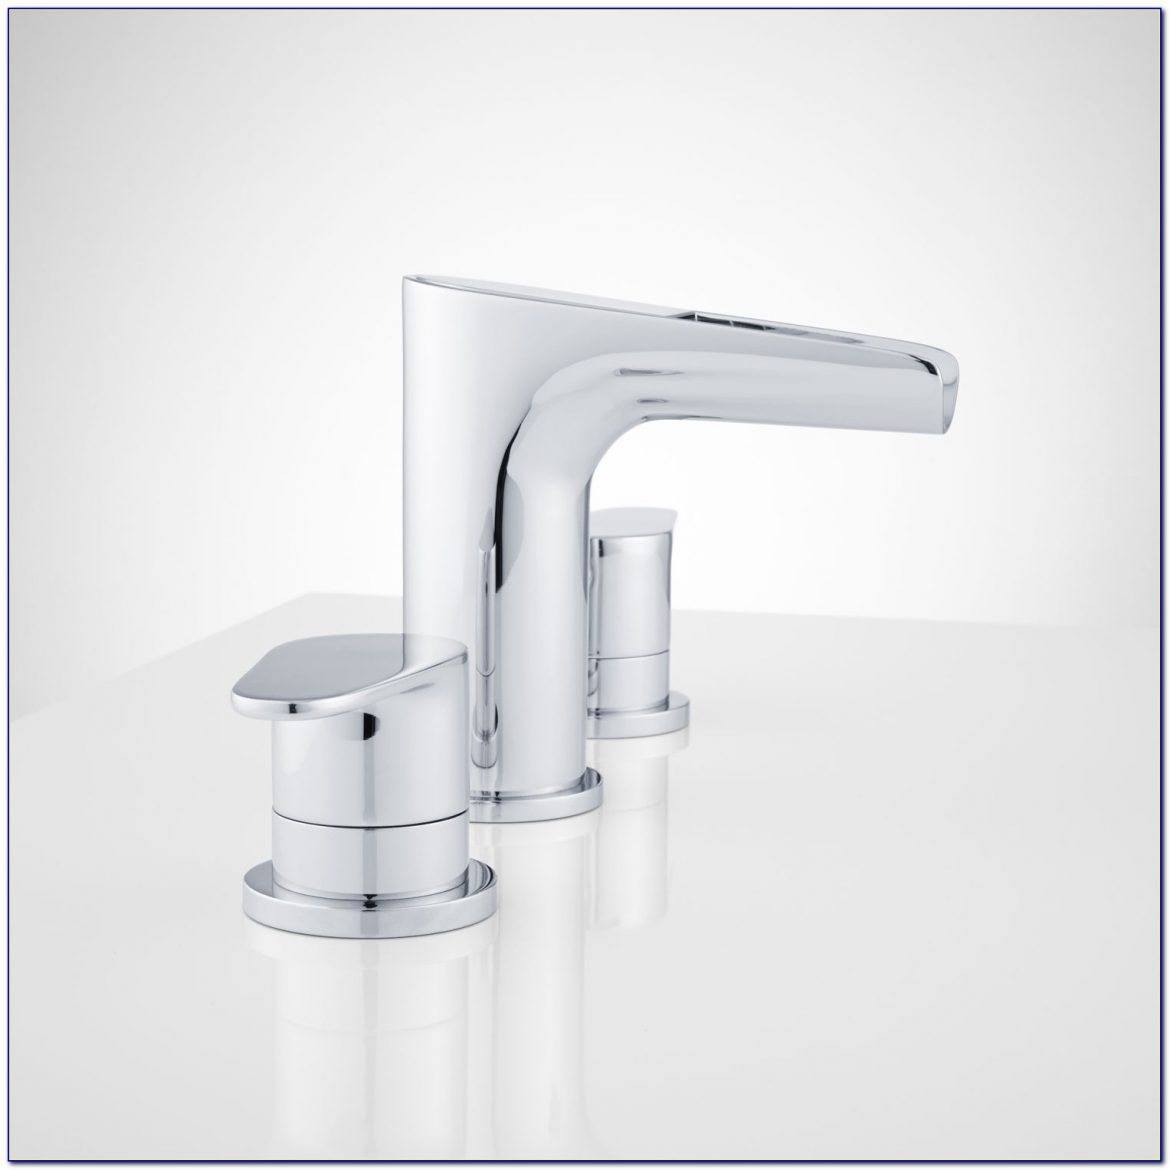 Waterfall Faucet Bathroom Fixtures